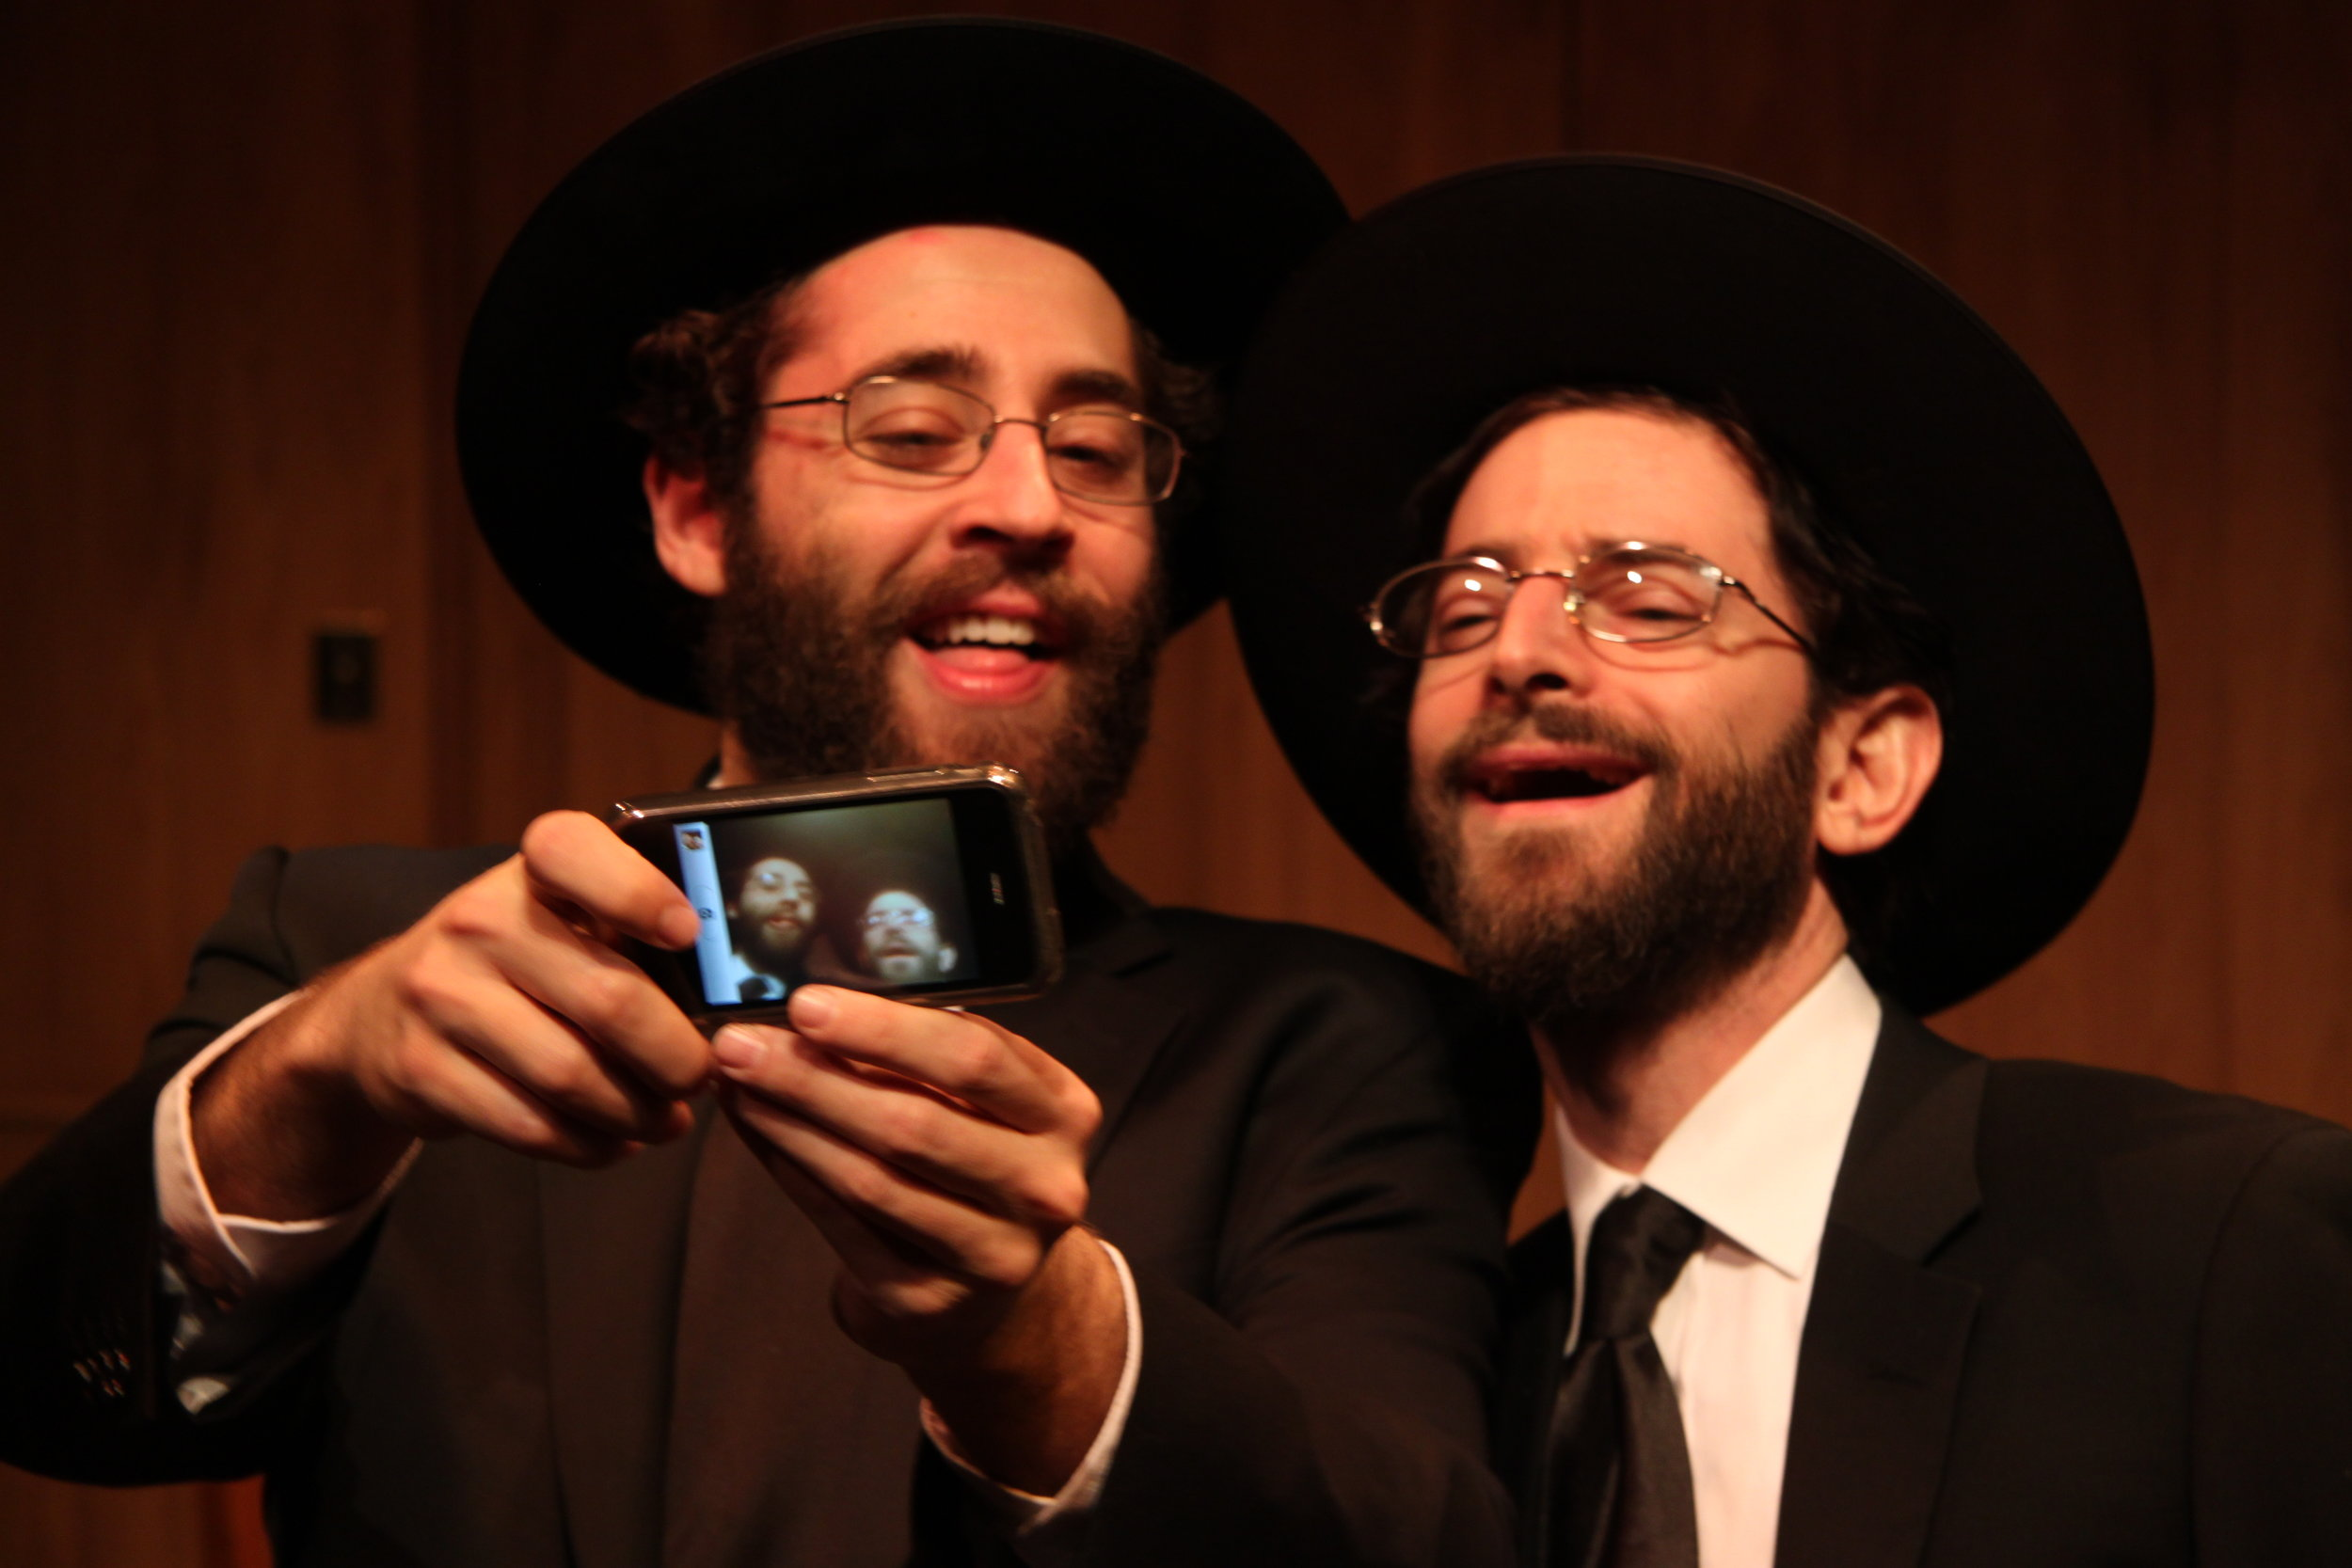 Michael Rubenfeld as Menachem and Jordan Pettle as Ephraim in YICHUD (Seclusion)